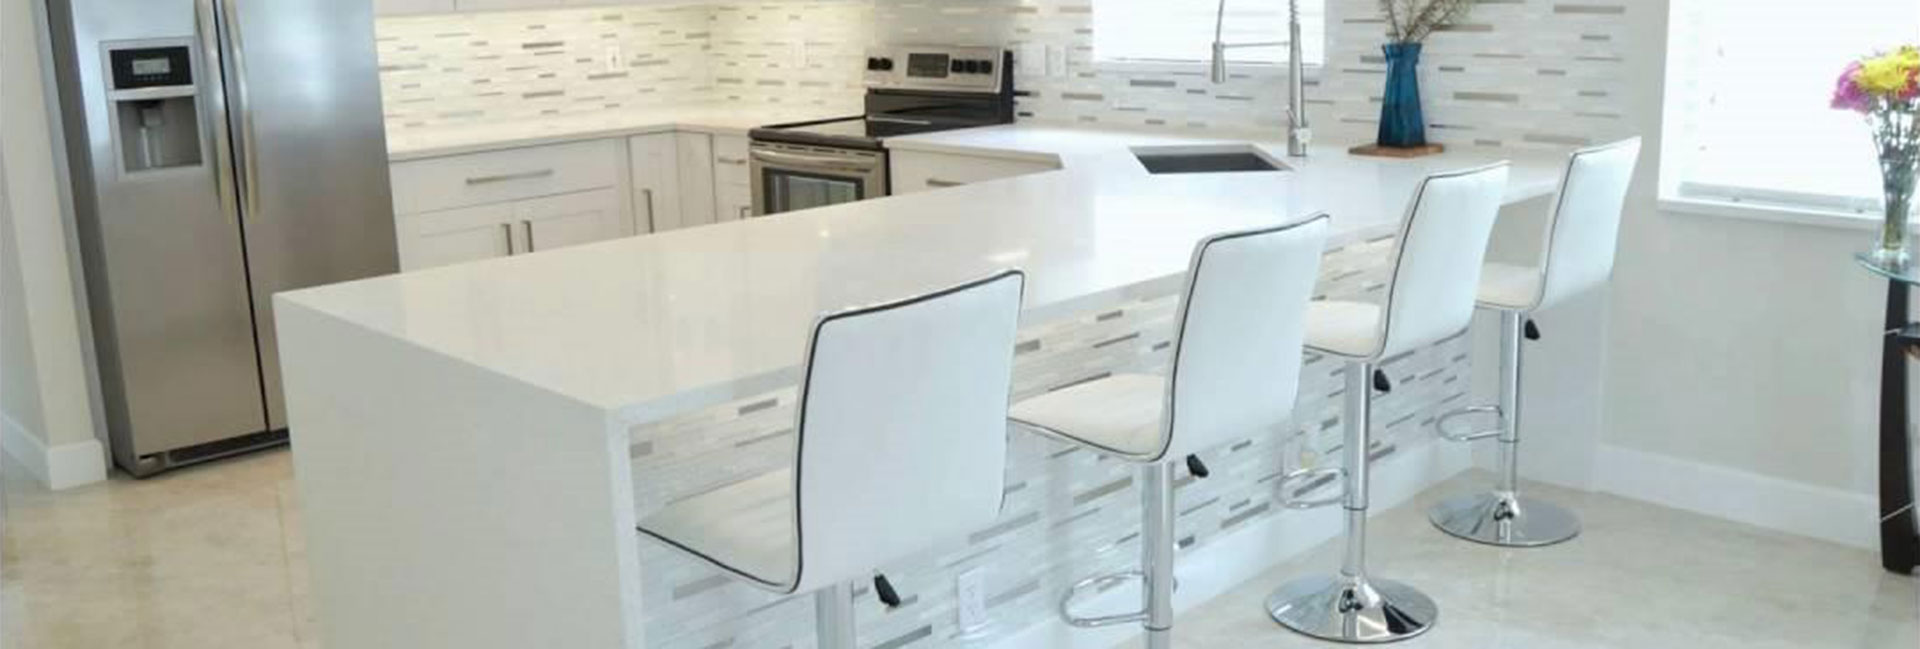 worktop-warehouse-kitchen-6